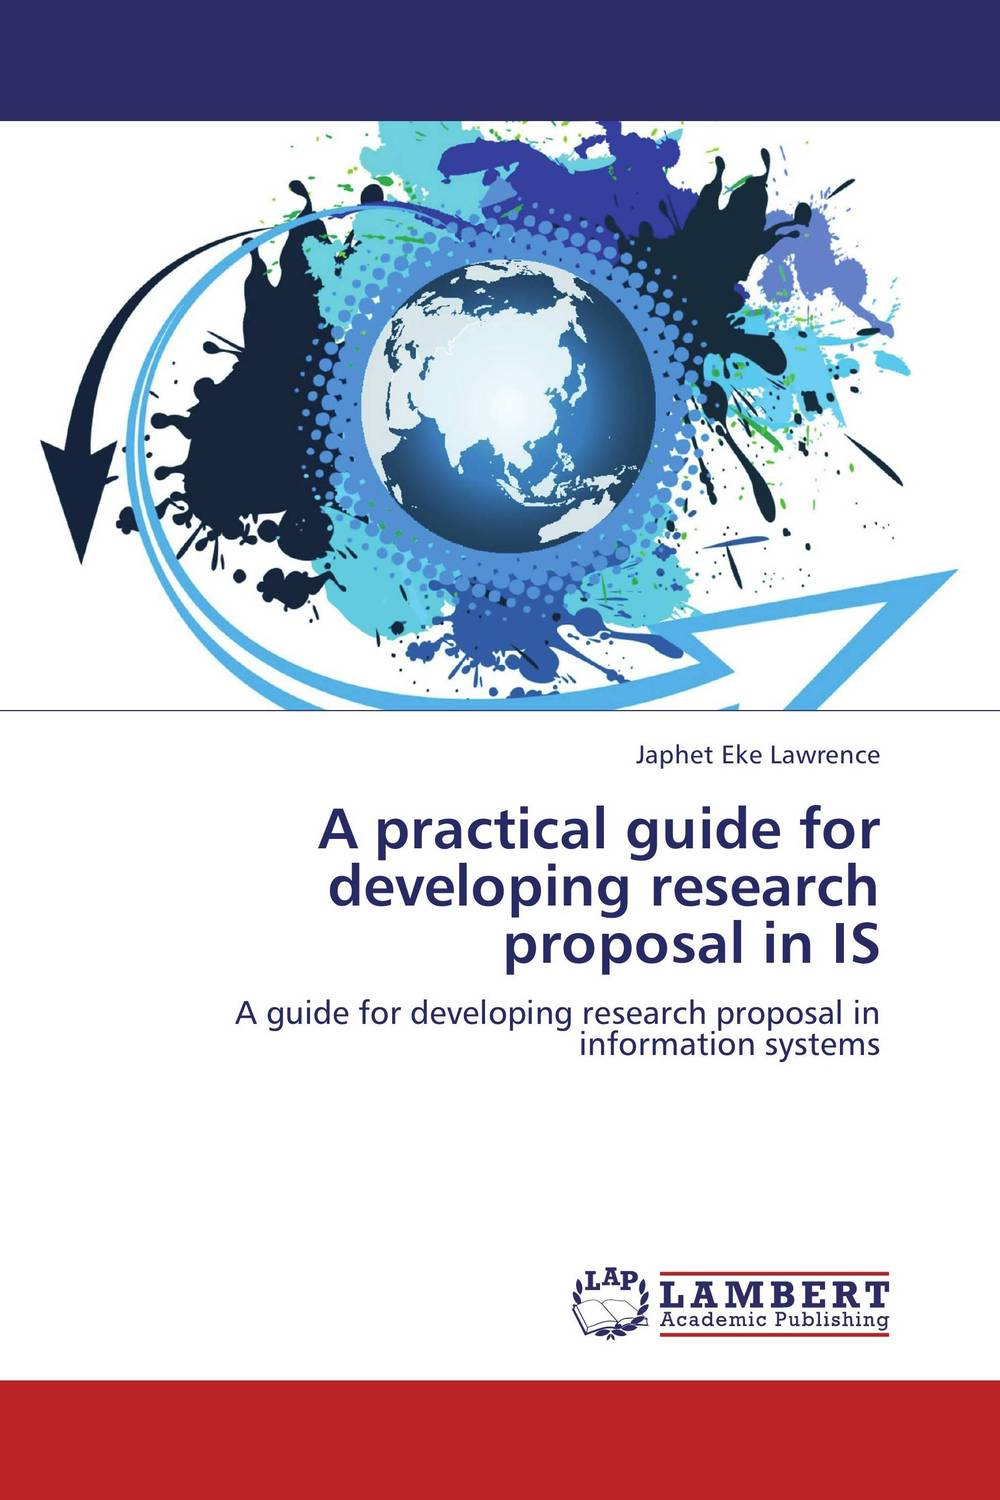 A practical guide for developing research proposal in IS joyce cooper kahn boosting executive skills in the classroom a practical guide for educators